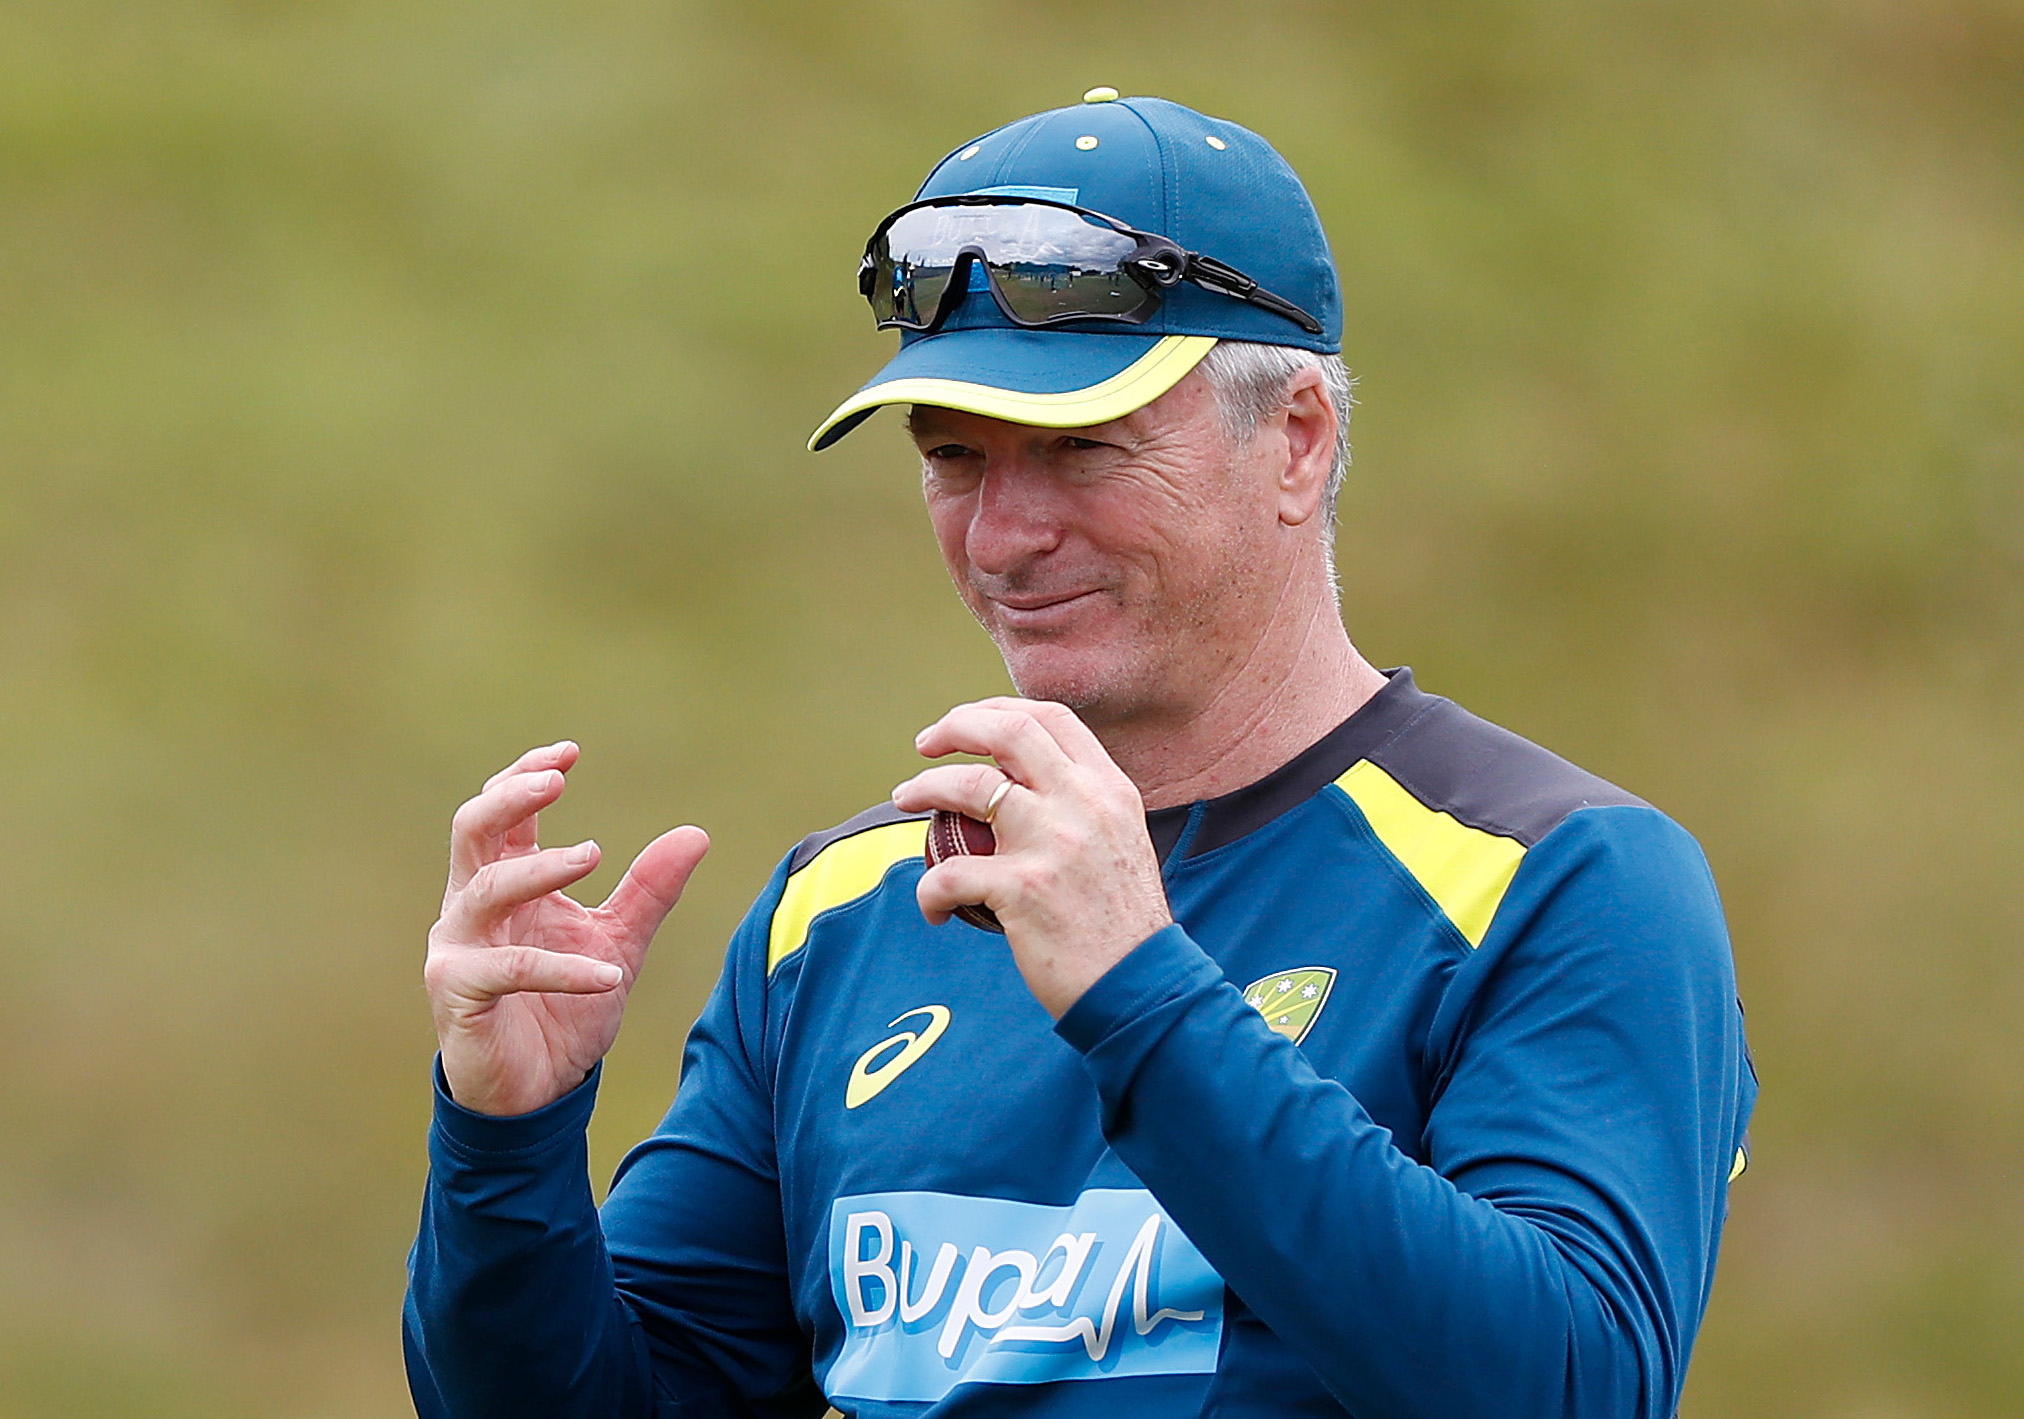 Steve Waugh talks about Proteas, uses 'choked' three times in one sentence - SA Cricket Mag